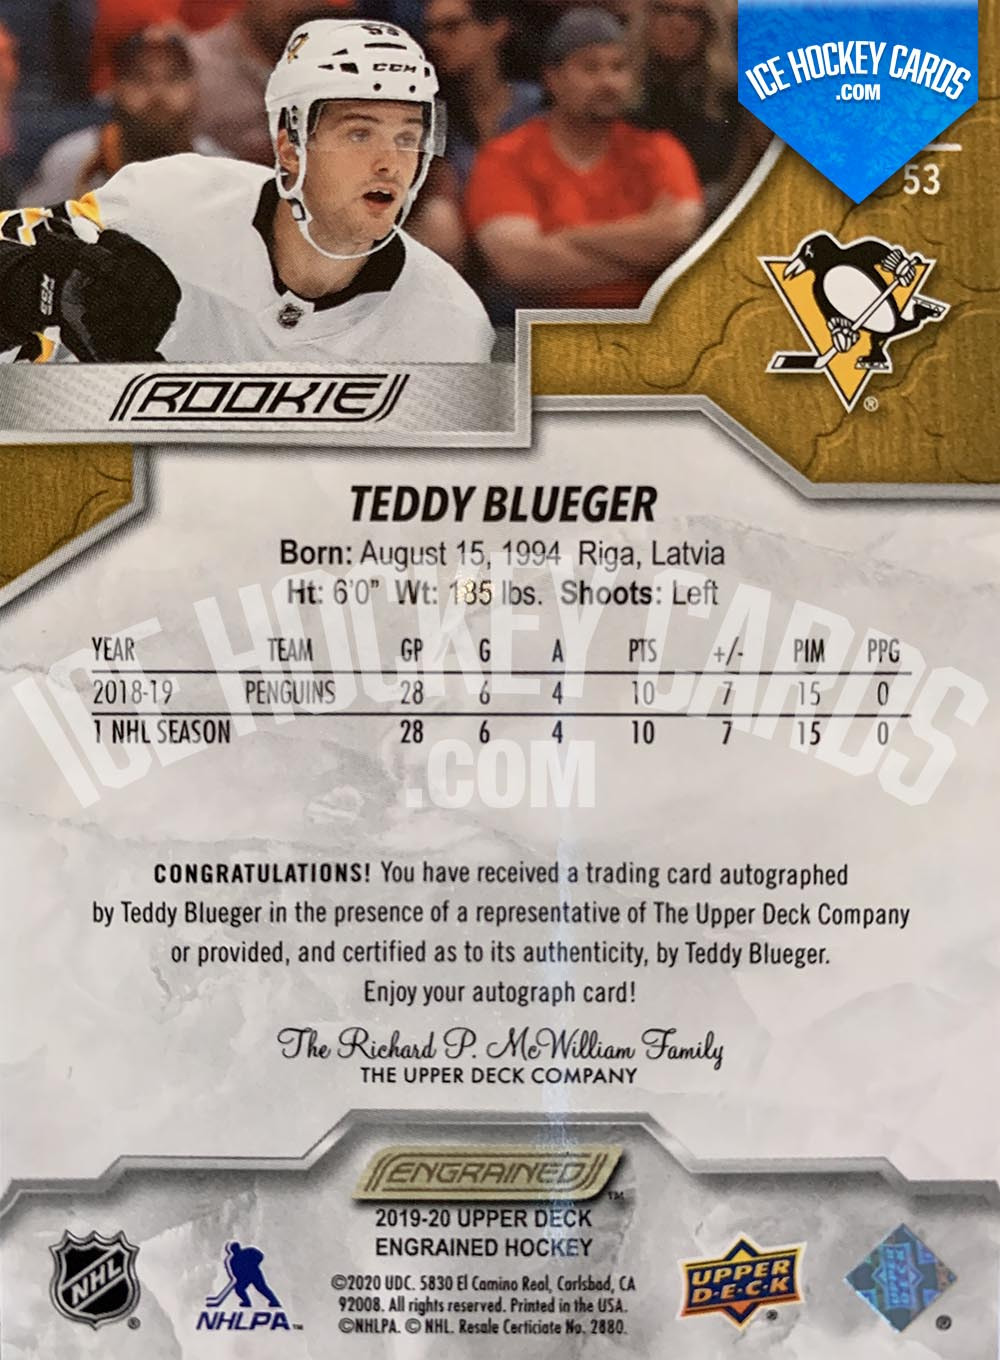 Upper Deck - Engrained 2019-20 - Teddy Blueger Autographed Rookie Card back